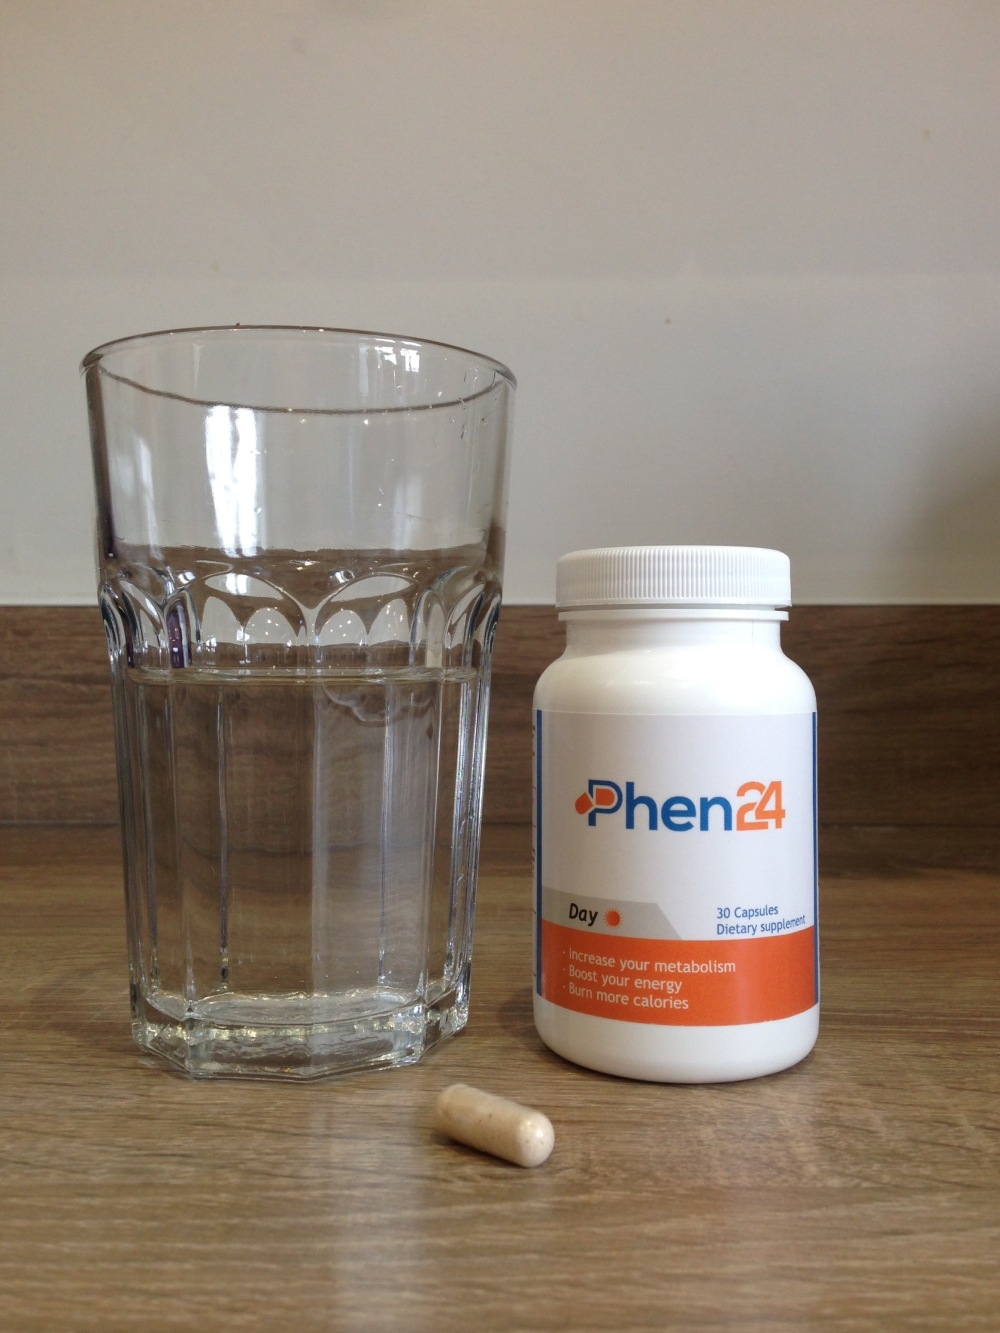 new-weight-loss-pill-phen24